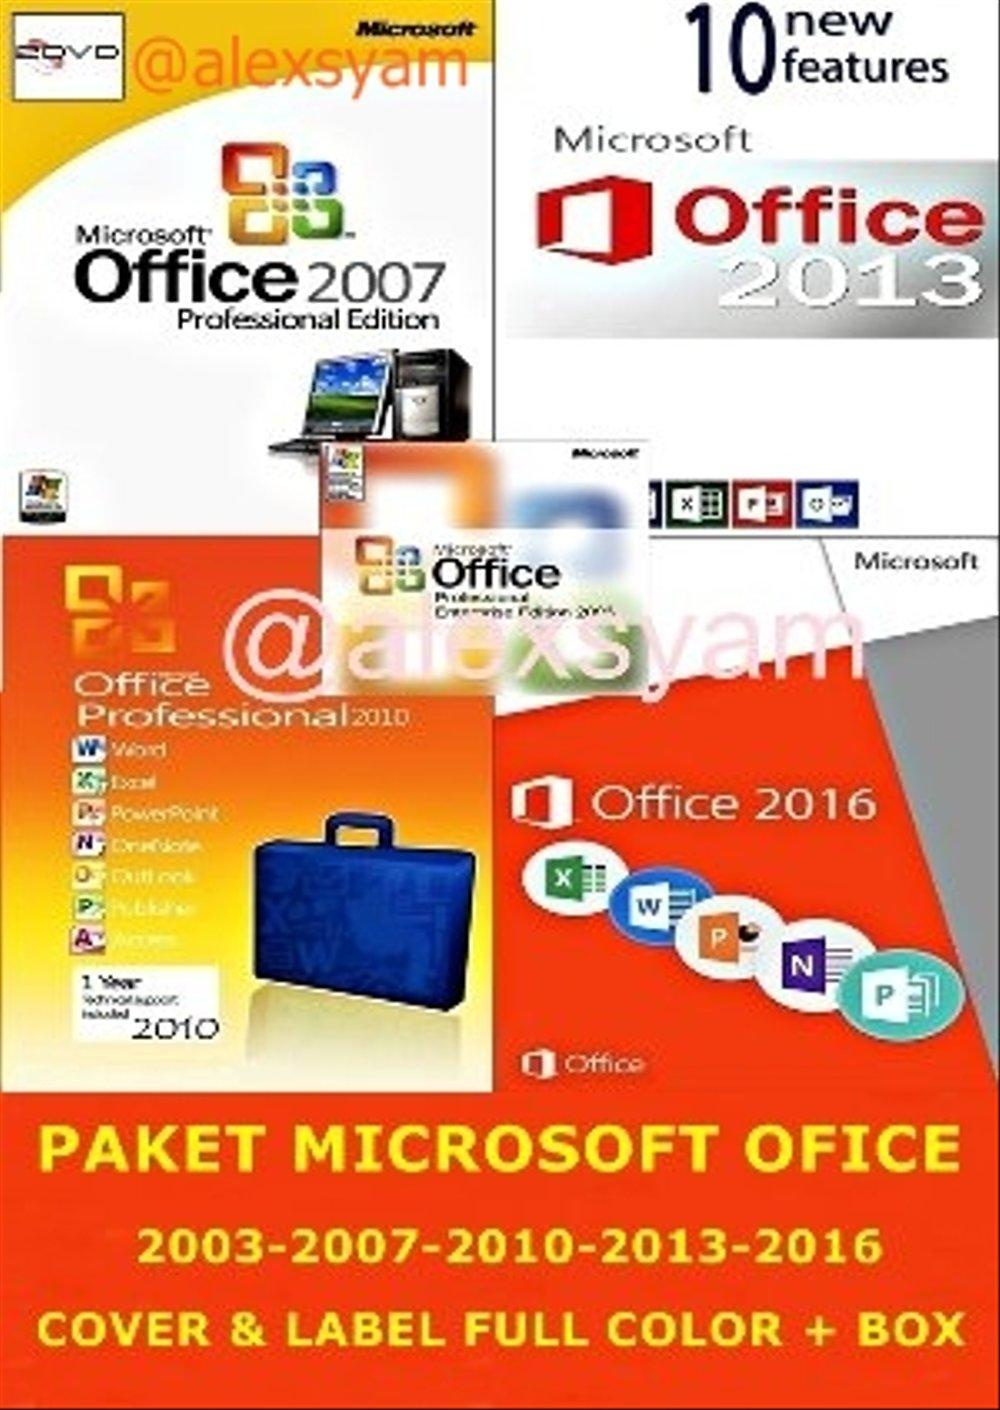 https://www.lazada.co.id/products/ms-office-2003-2007-2010-2013-2016-i821576021-s1170556809.html